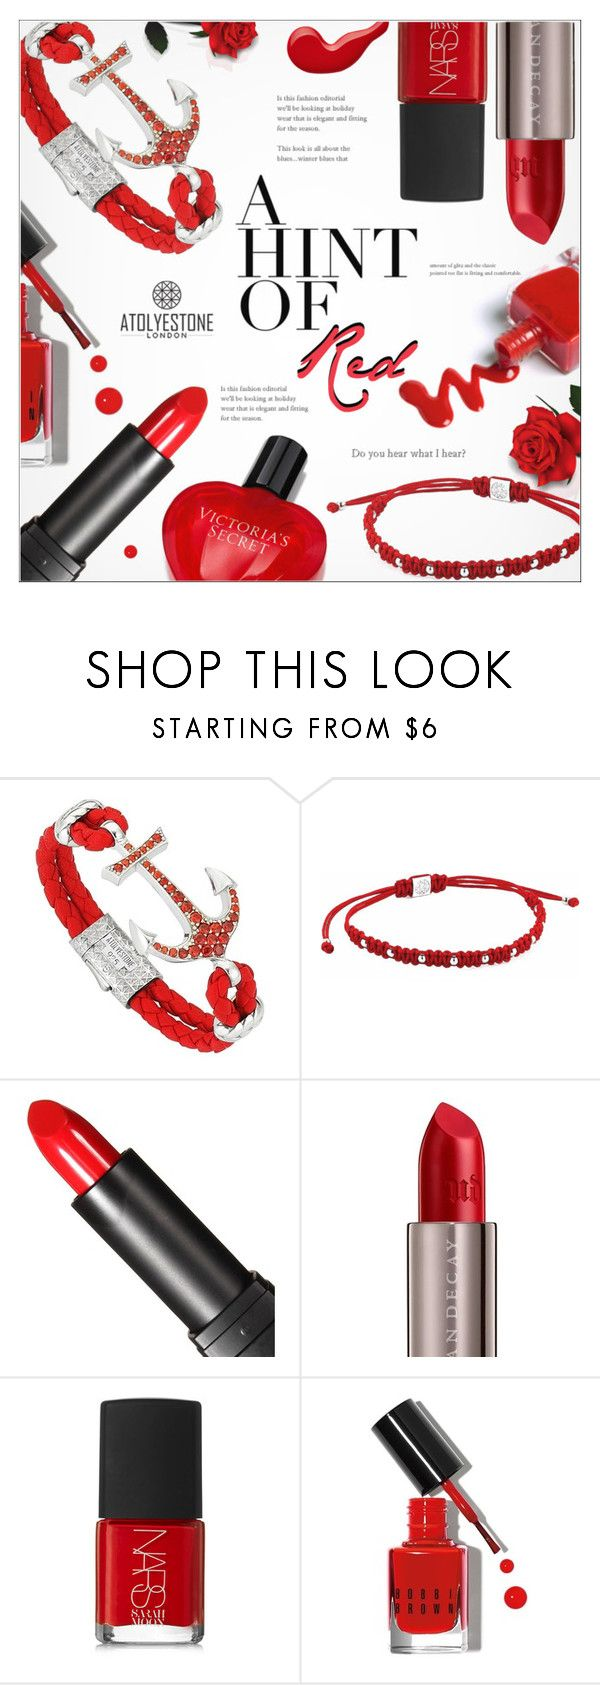 """""""A Hint of RED ~ ATOLYESTONE Contest"""" by alexandrazeres ❤ liked on Polyvore featuring beauty, Urban Decay, NARS Cosmetics, Bobbi Brown Cosmetics and Victoria's Secret"""